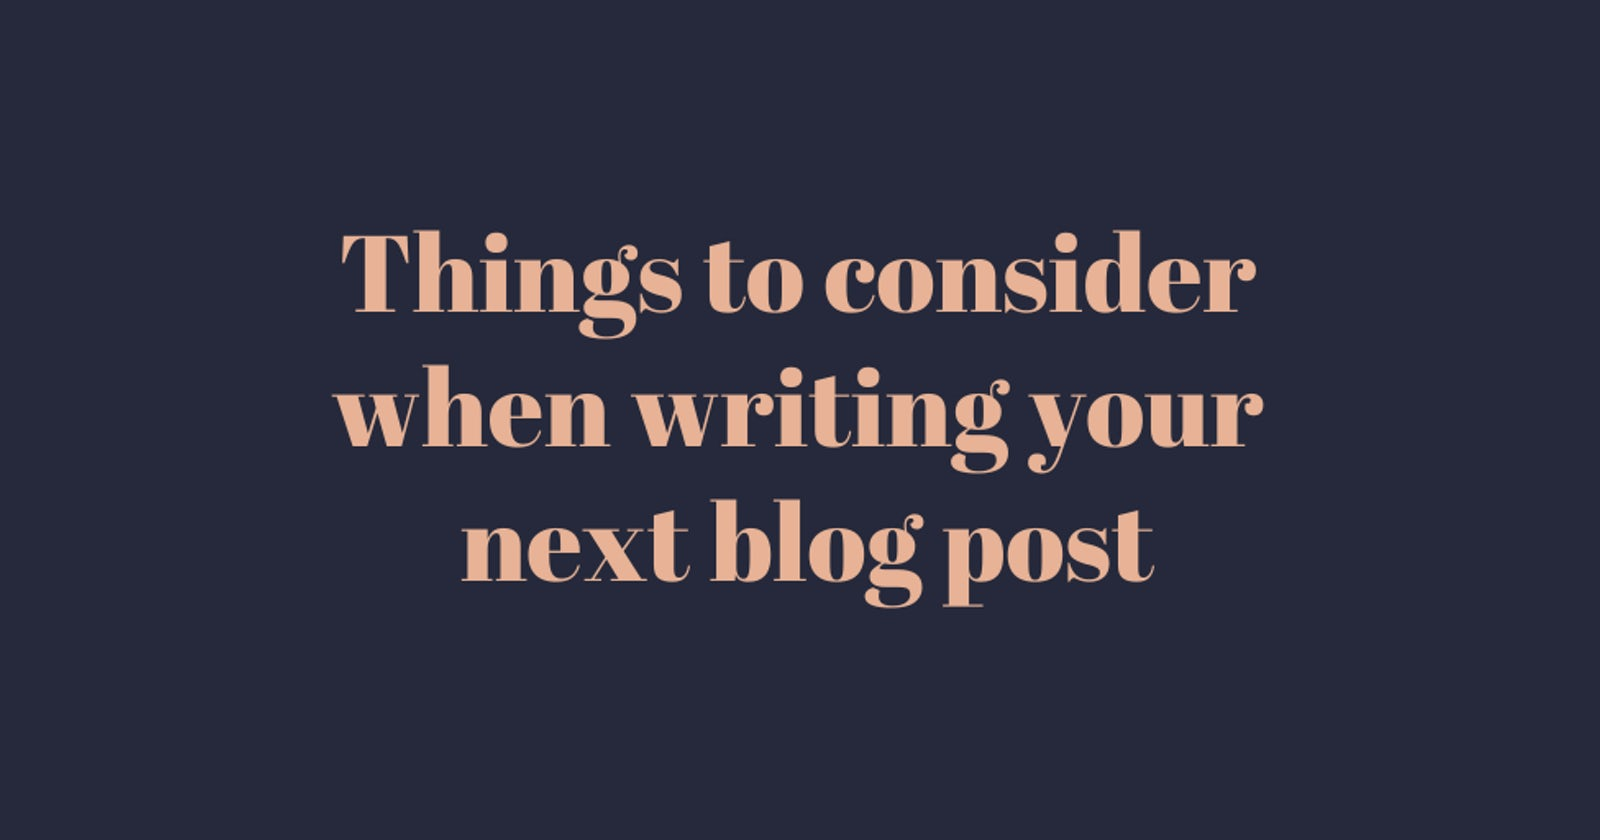 Things to consider when writing your next blog post